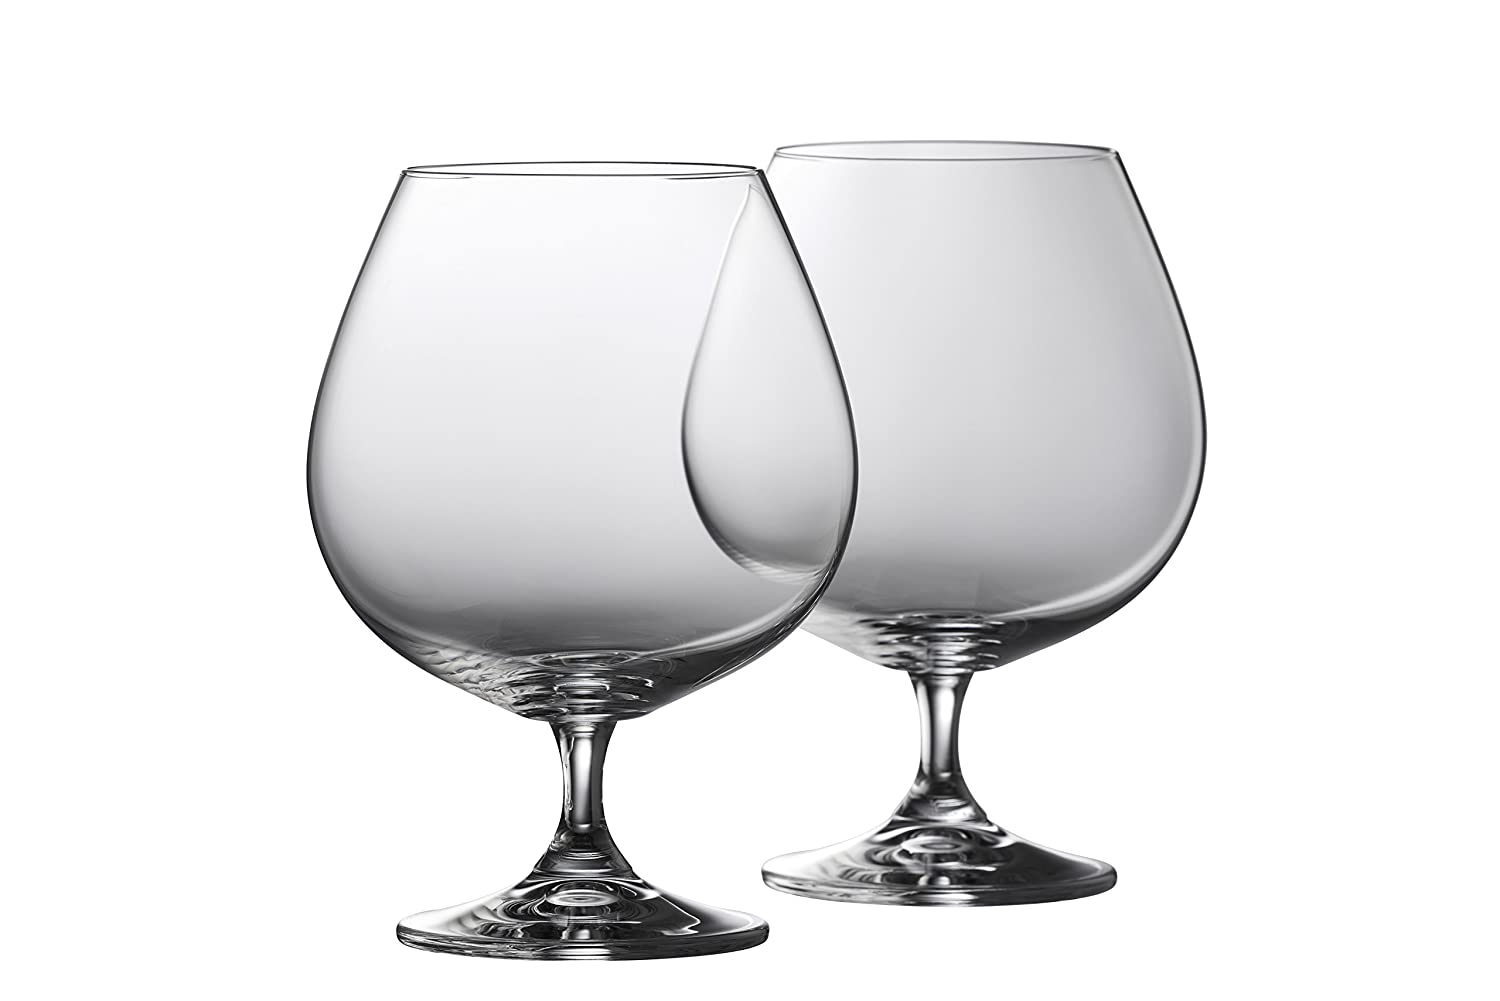 Galway Crystal Clarity Large balloon Brandy (Set of 2), Transparent, Set of 2 Belleek Pottery 60009/2